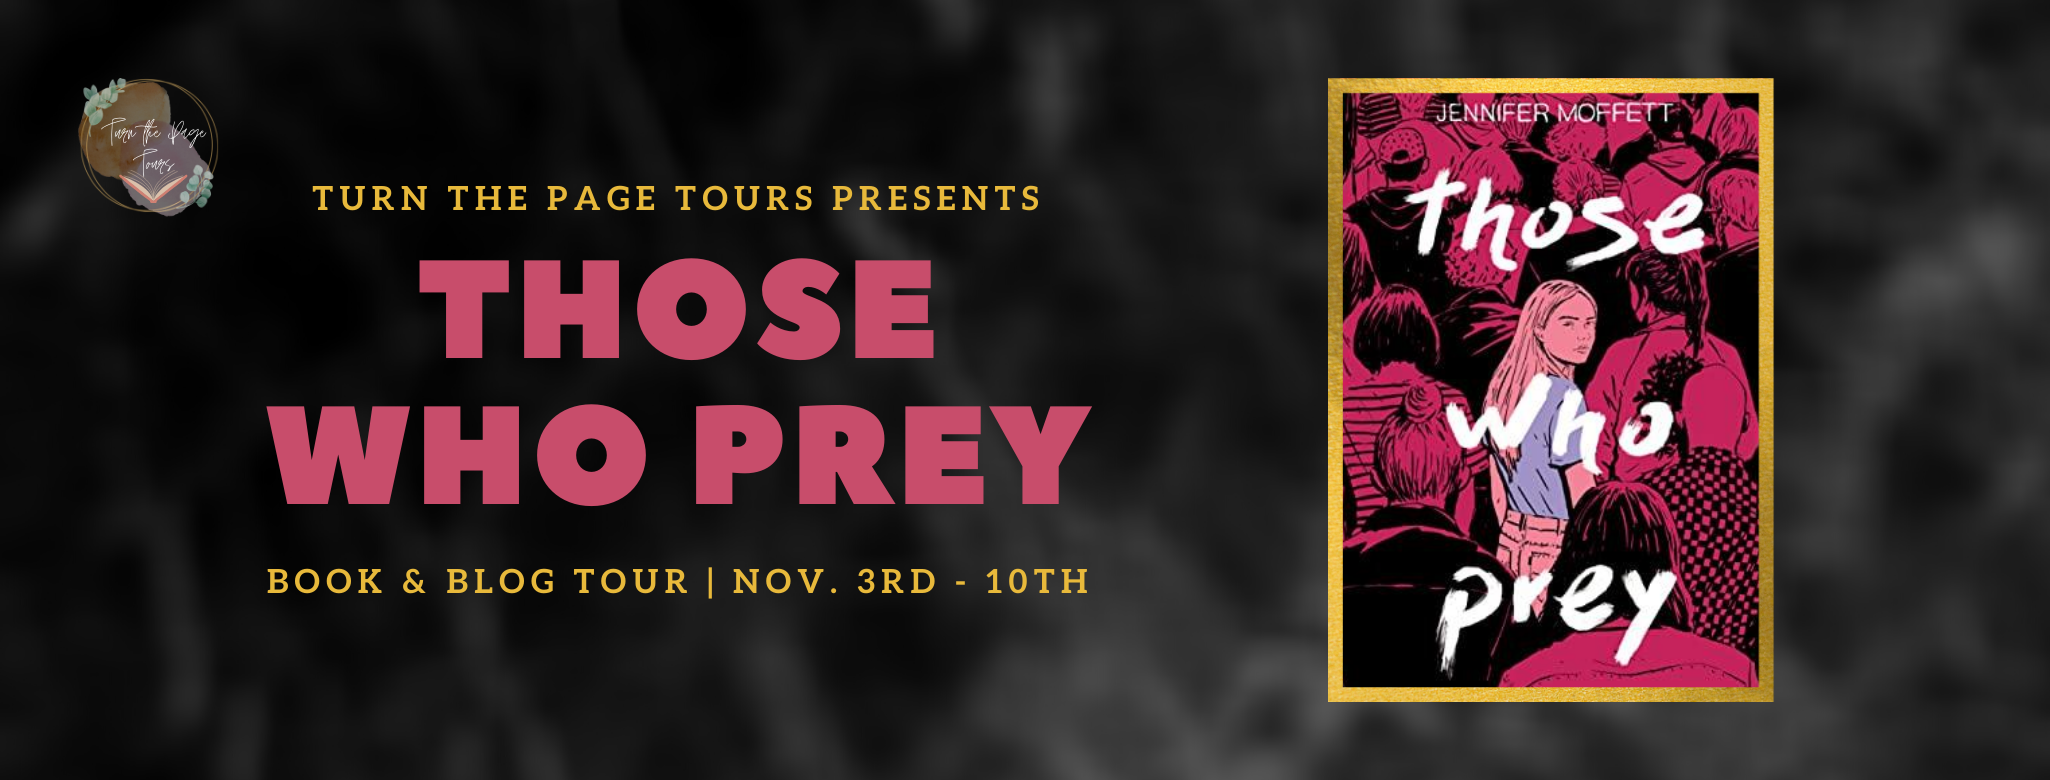 Blog Tour: Those Who Prey by Jennifer Moffett (Guest Post + Review + Giveaway!!!)